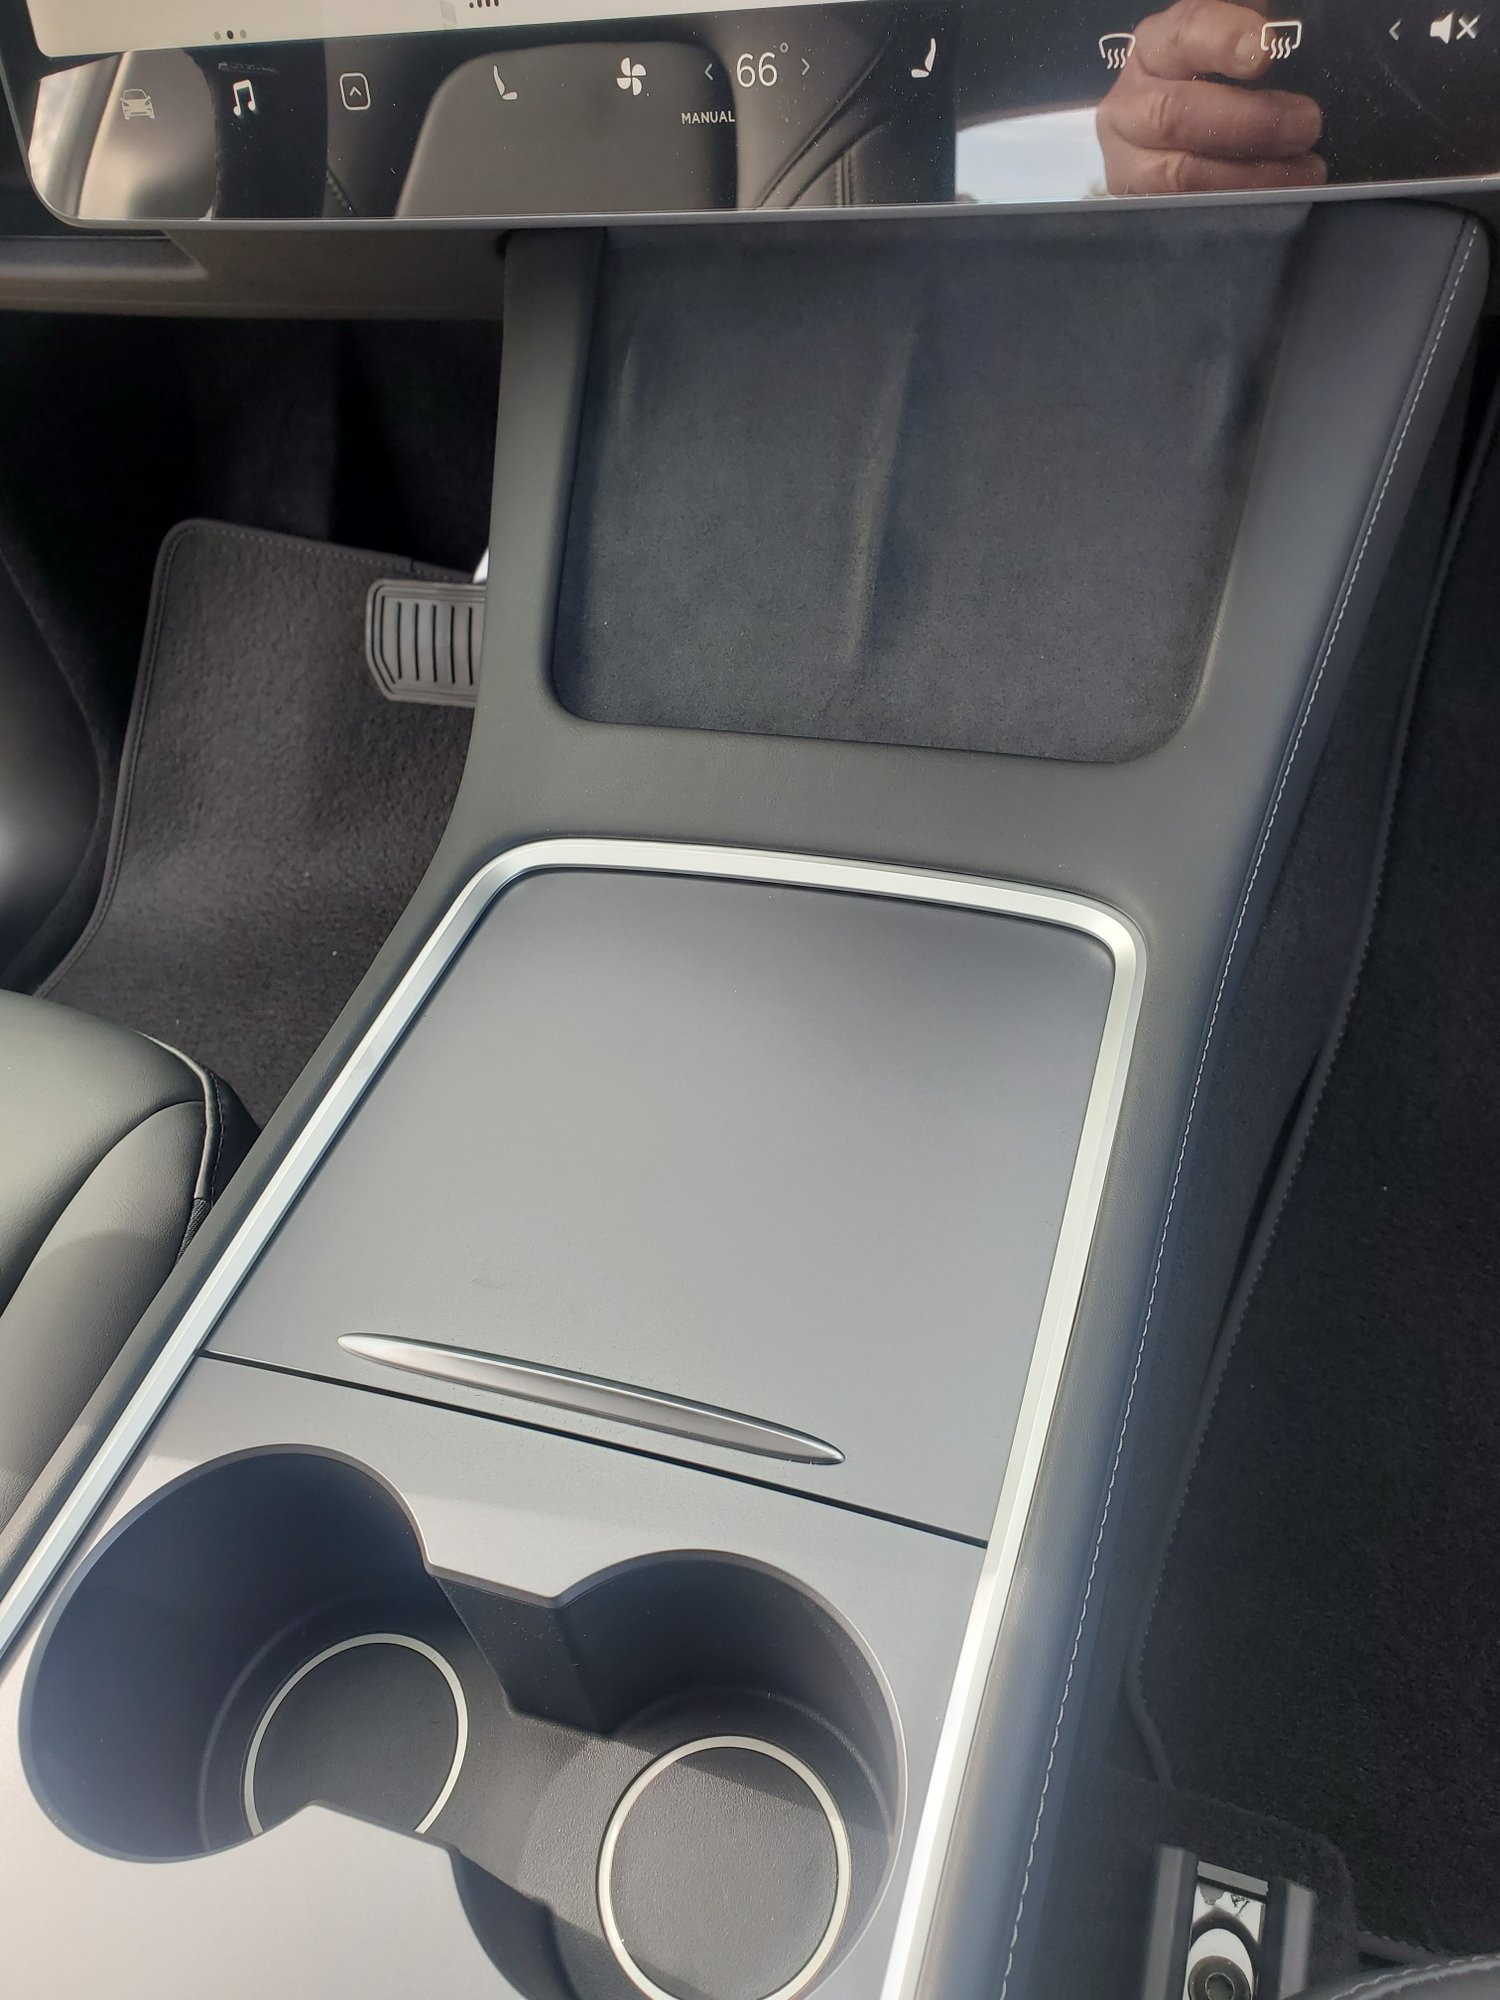 Model Y front center console.jpg